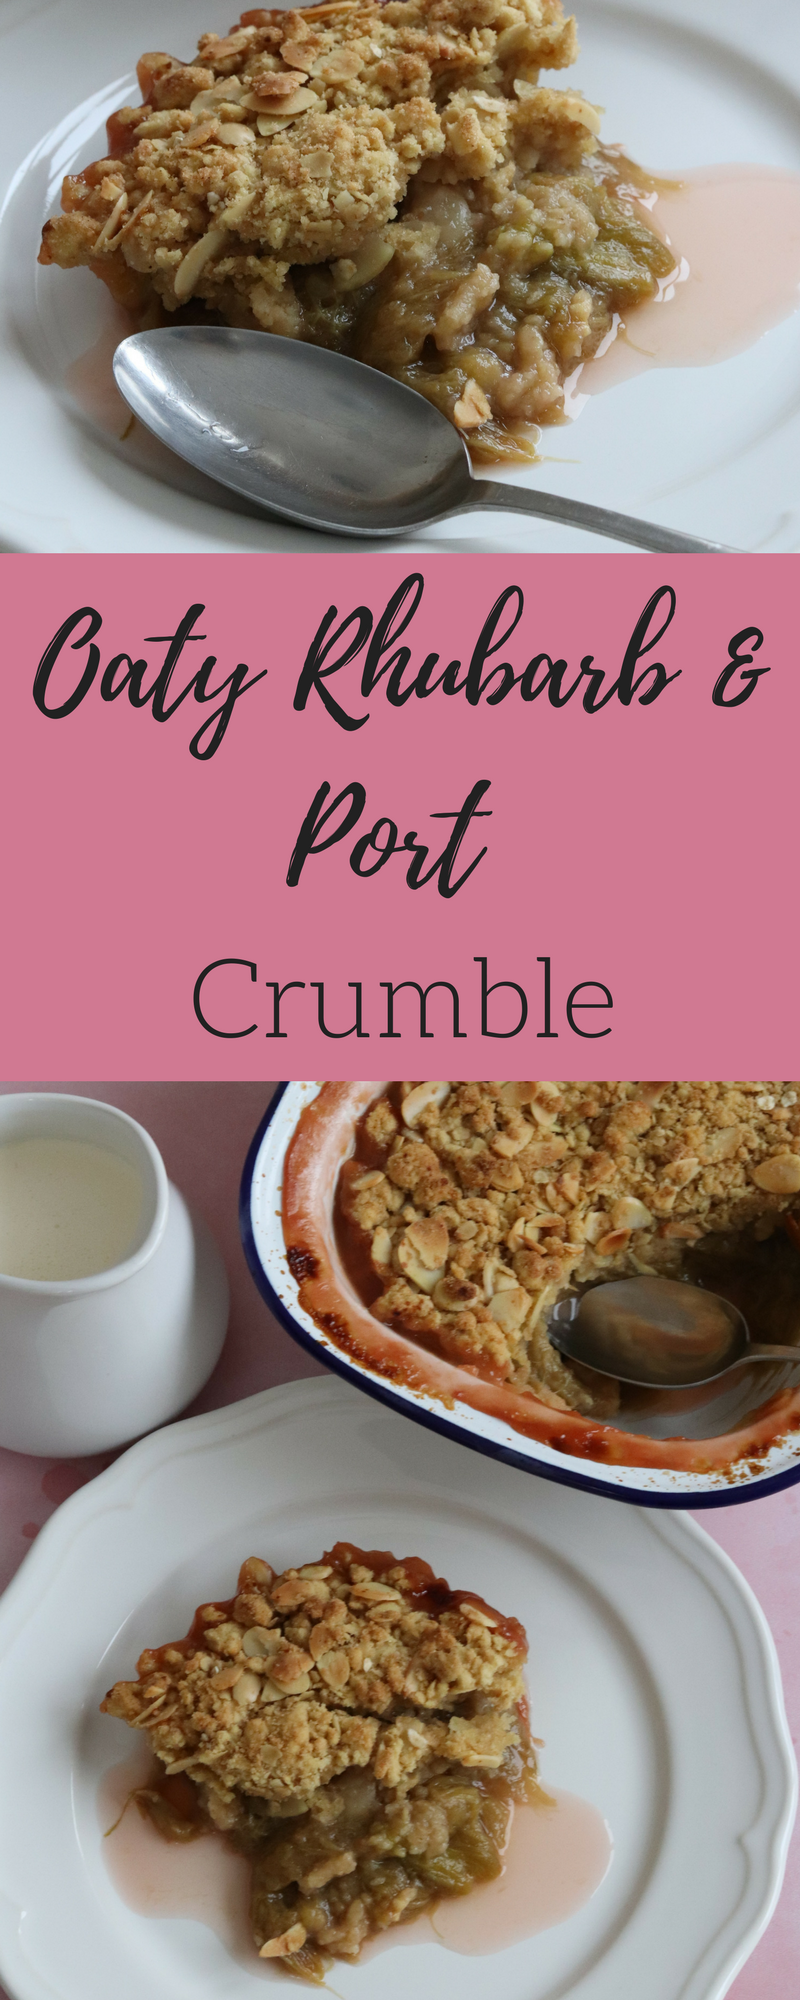 My Oaty Rhubarb & Port Crumble is a twist on a British traditional pudding. The port helps bring out the sweetness in the rhubarb and the topping has an extra added crunch from the oats and almonds.